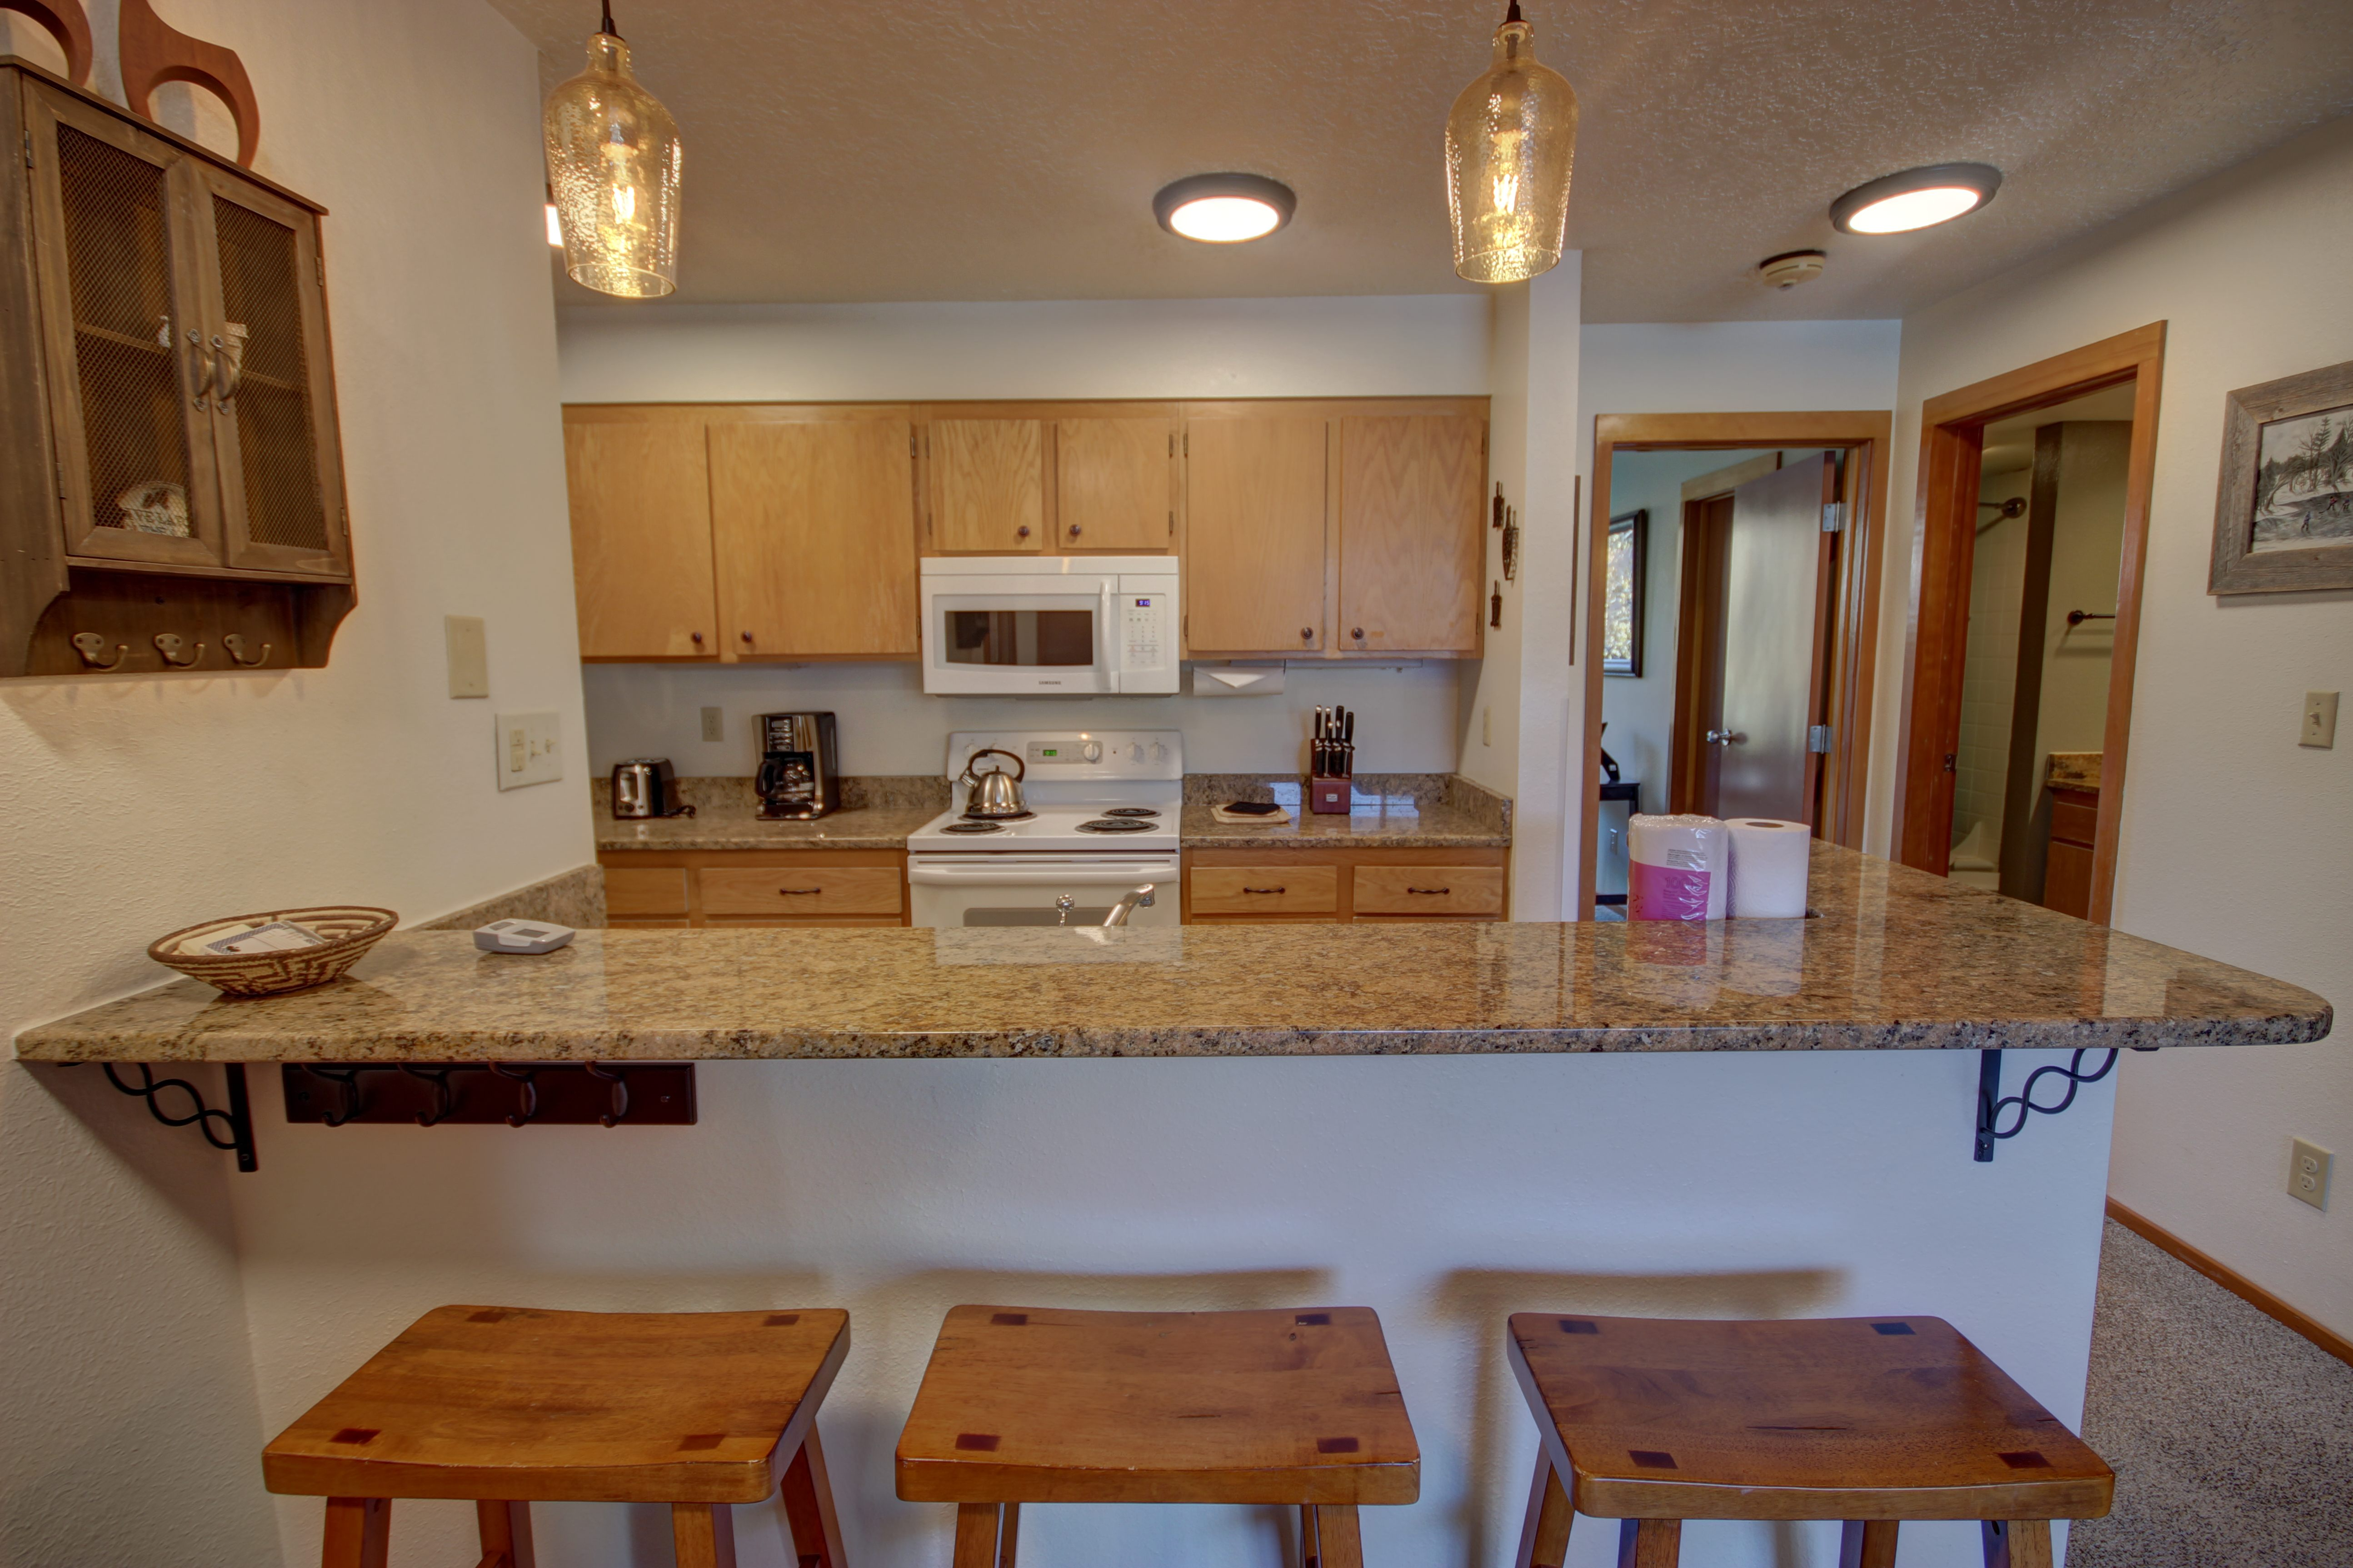 Kitchen with breakfast bar and extra seating perfect for a kids table